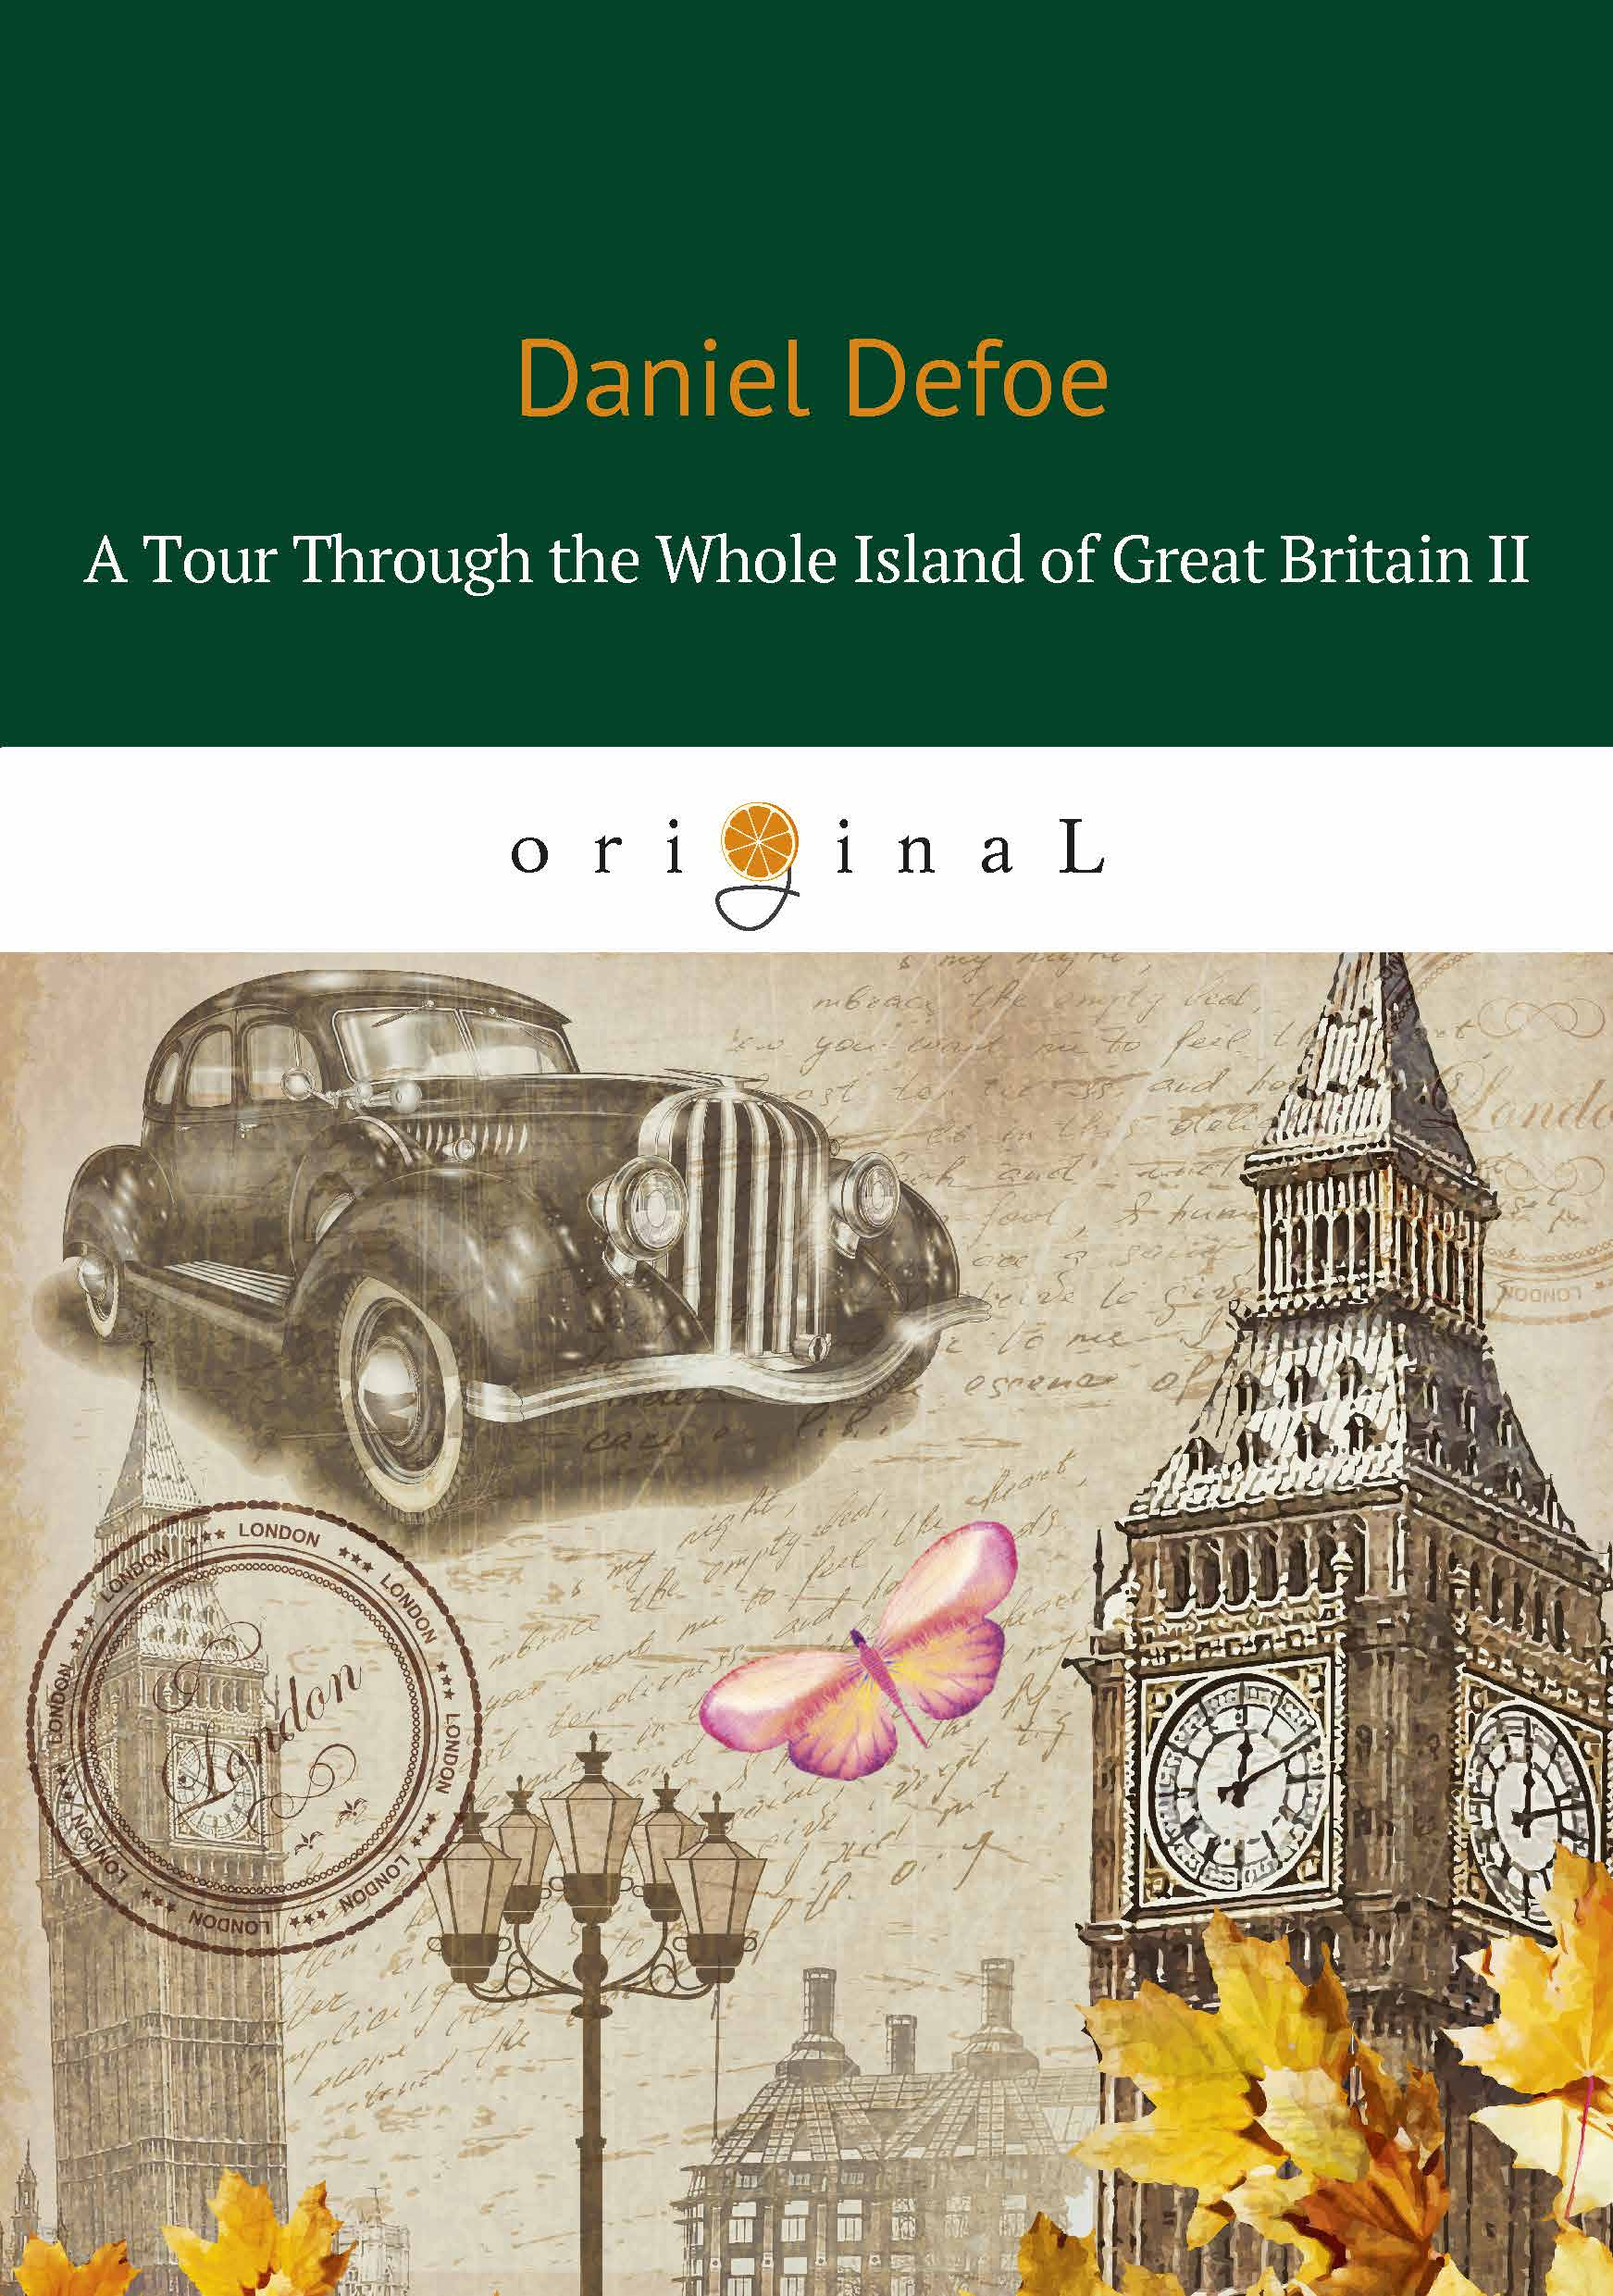 Daniel Defoe A Tour Through the Whole Island of Great Britain II даниэль дефо a tour through the whole island of great britain iii